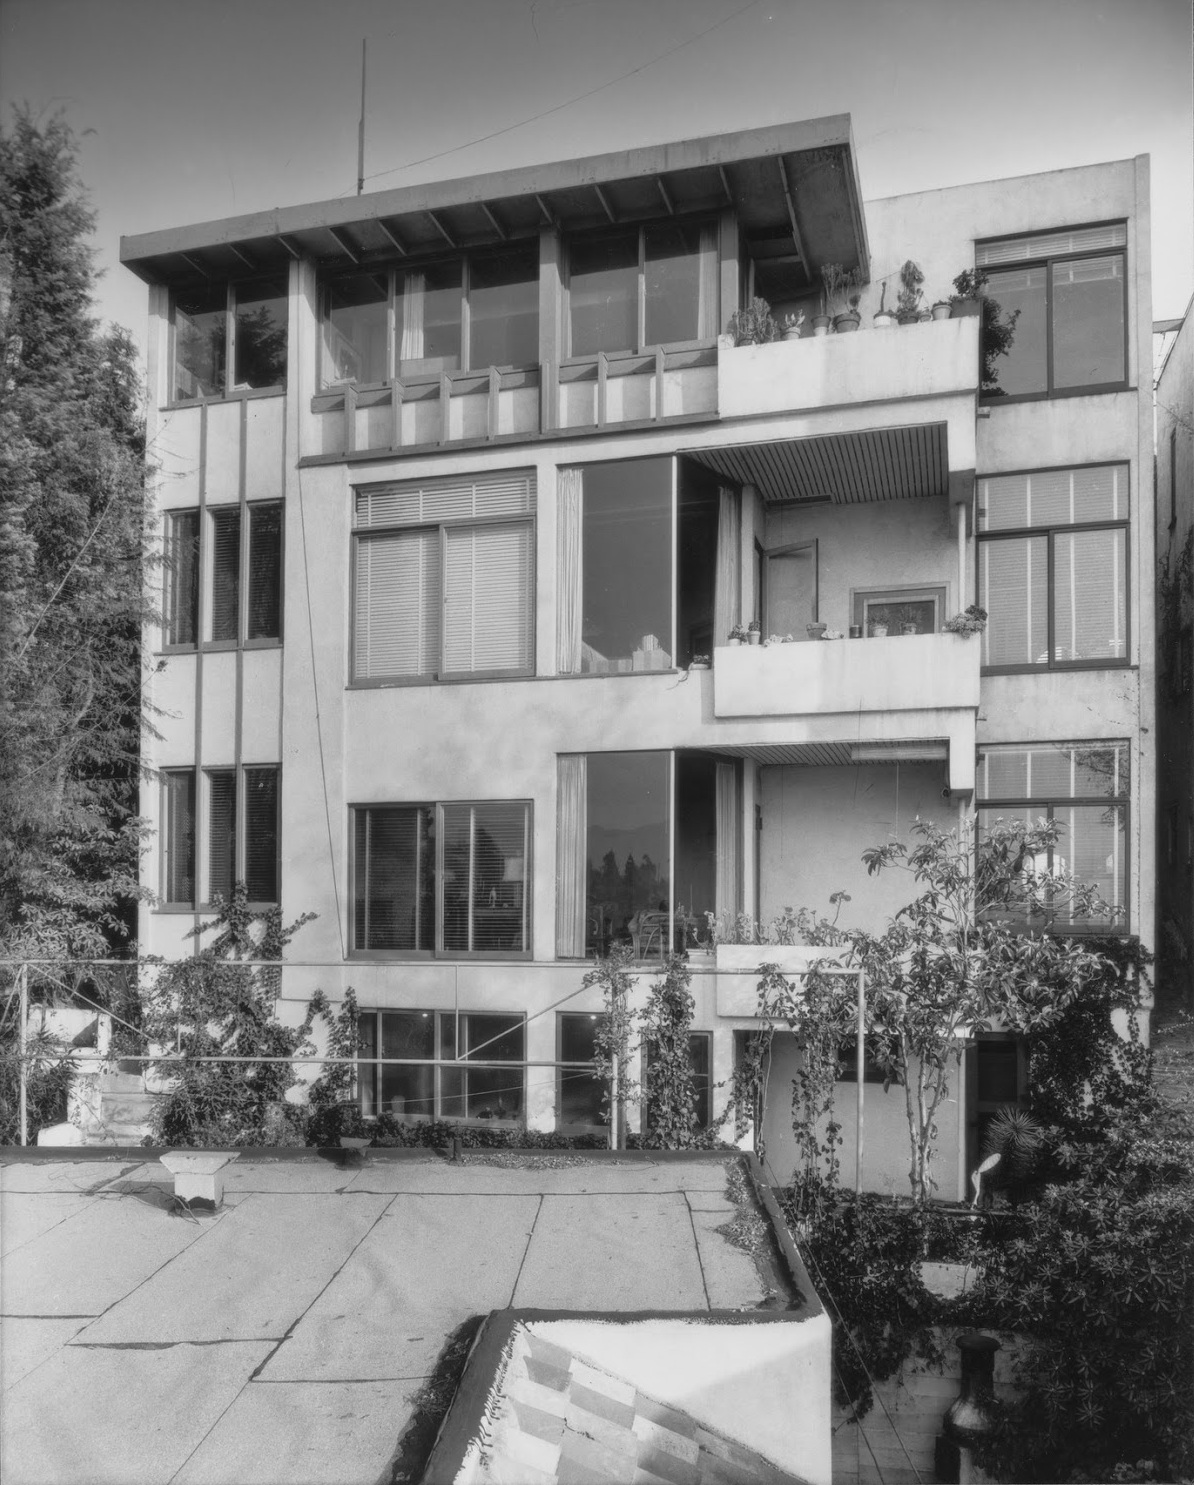 One of the five freestanding buildings at Manola Court, photographed by Julius Shulman in 1938.